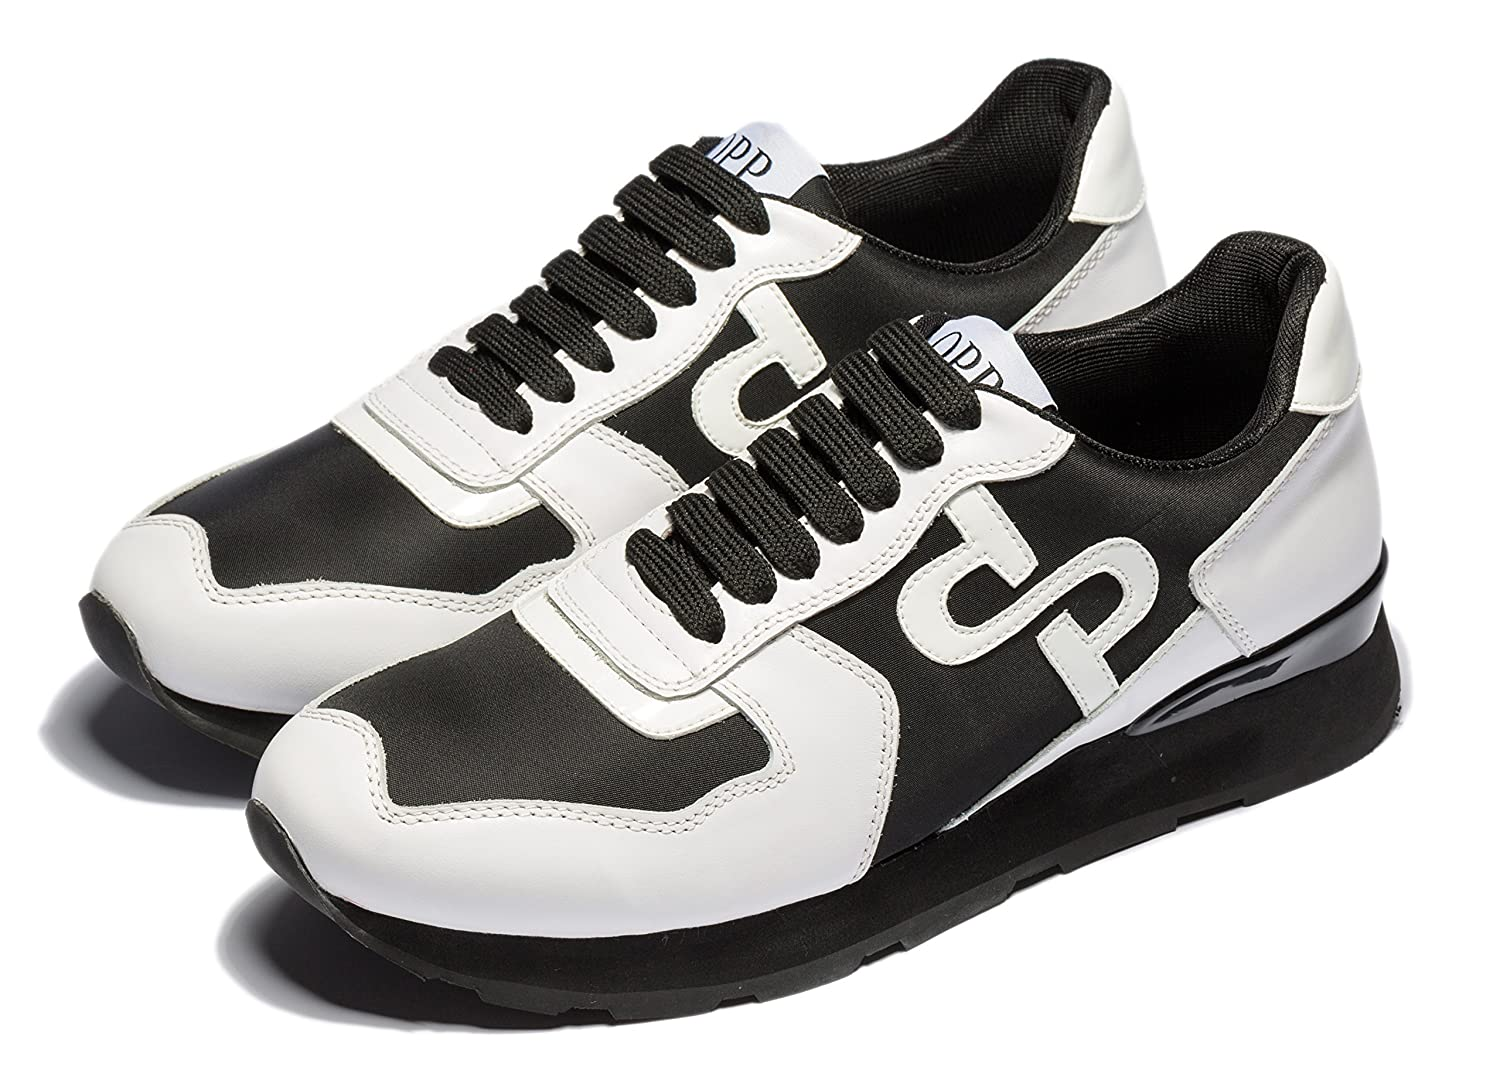 OPP Men's Fashion Lights Leather Sports Sneaker Lace-up Rubber Soft Sole Casual Shoes B07C3NPXMN 10  M US|Black